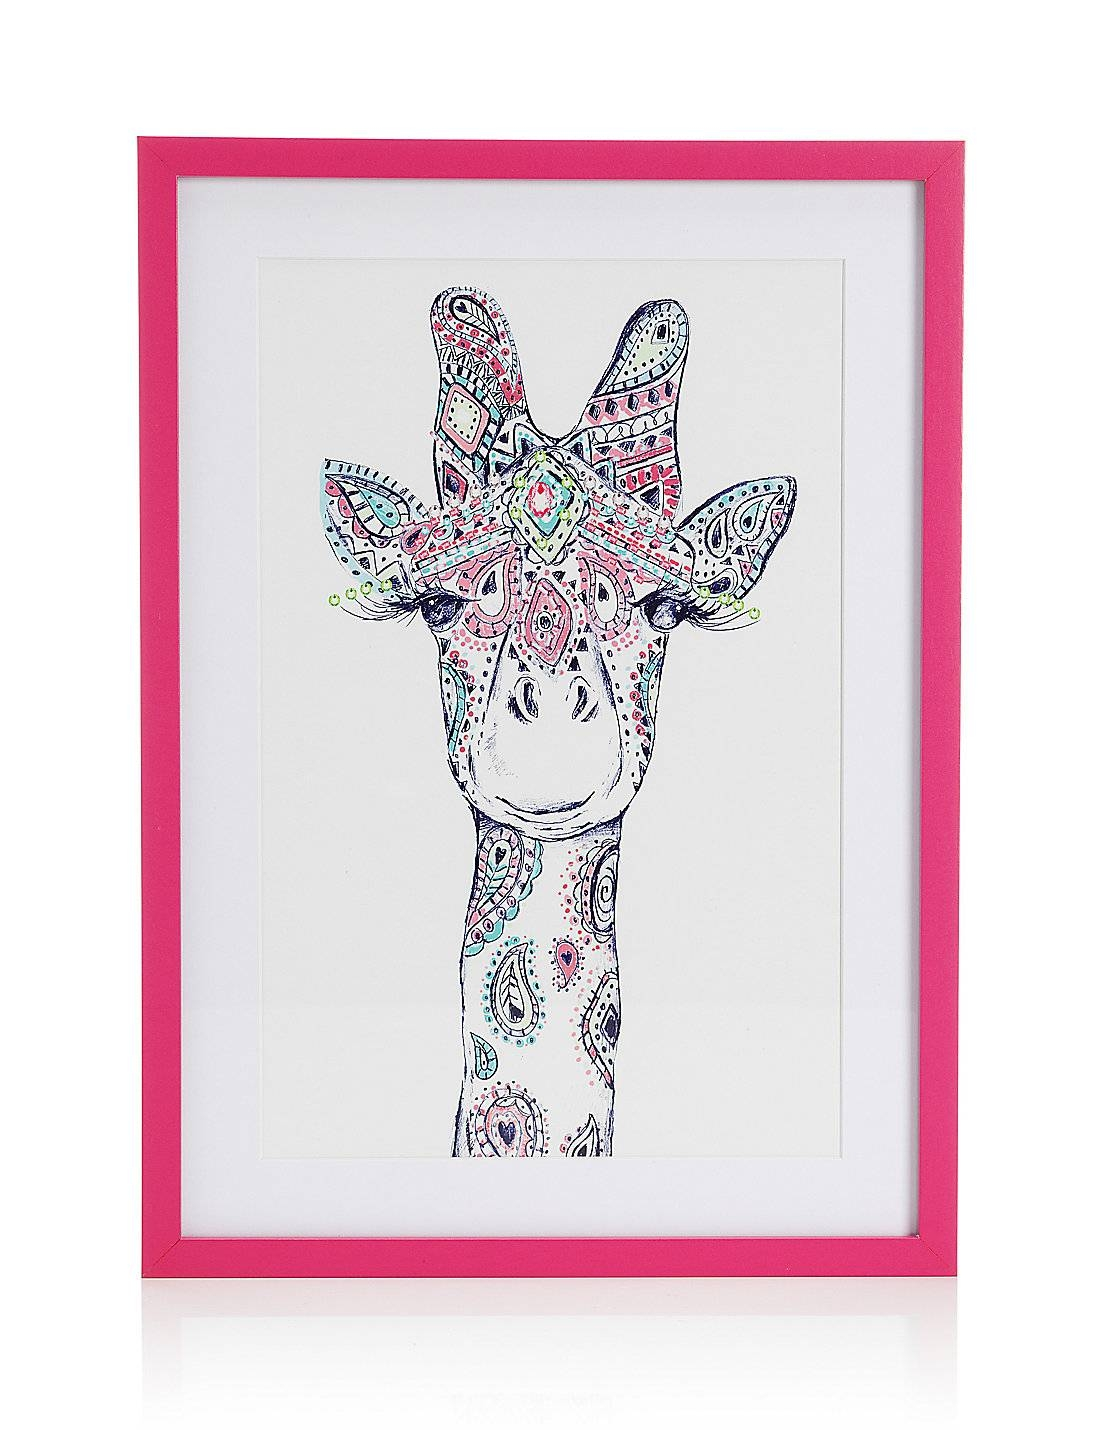 Wall Art Designs: Giraffe Wall Art Giraffe Wall Decor Framed Wall Pertaining To Latest Giraffe Metal Wall Art (View 18 of 20)